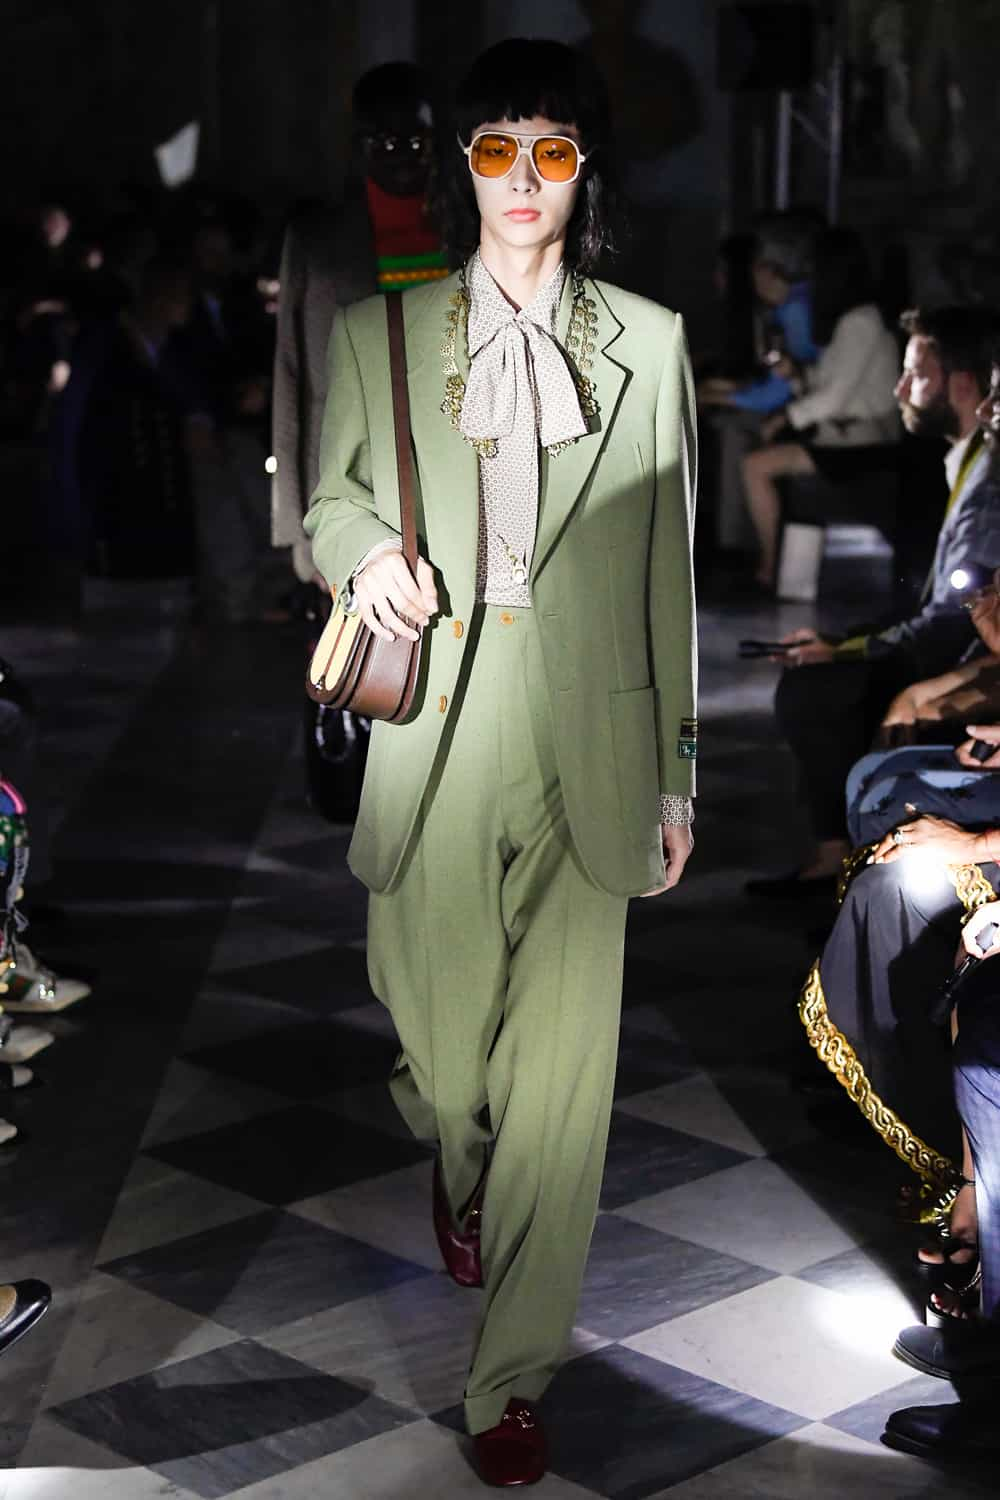 Gucci Cruise 2020 (firstVIEW)Gucci Resort 2020 (firstVIEW)